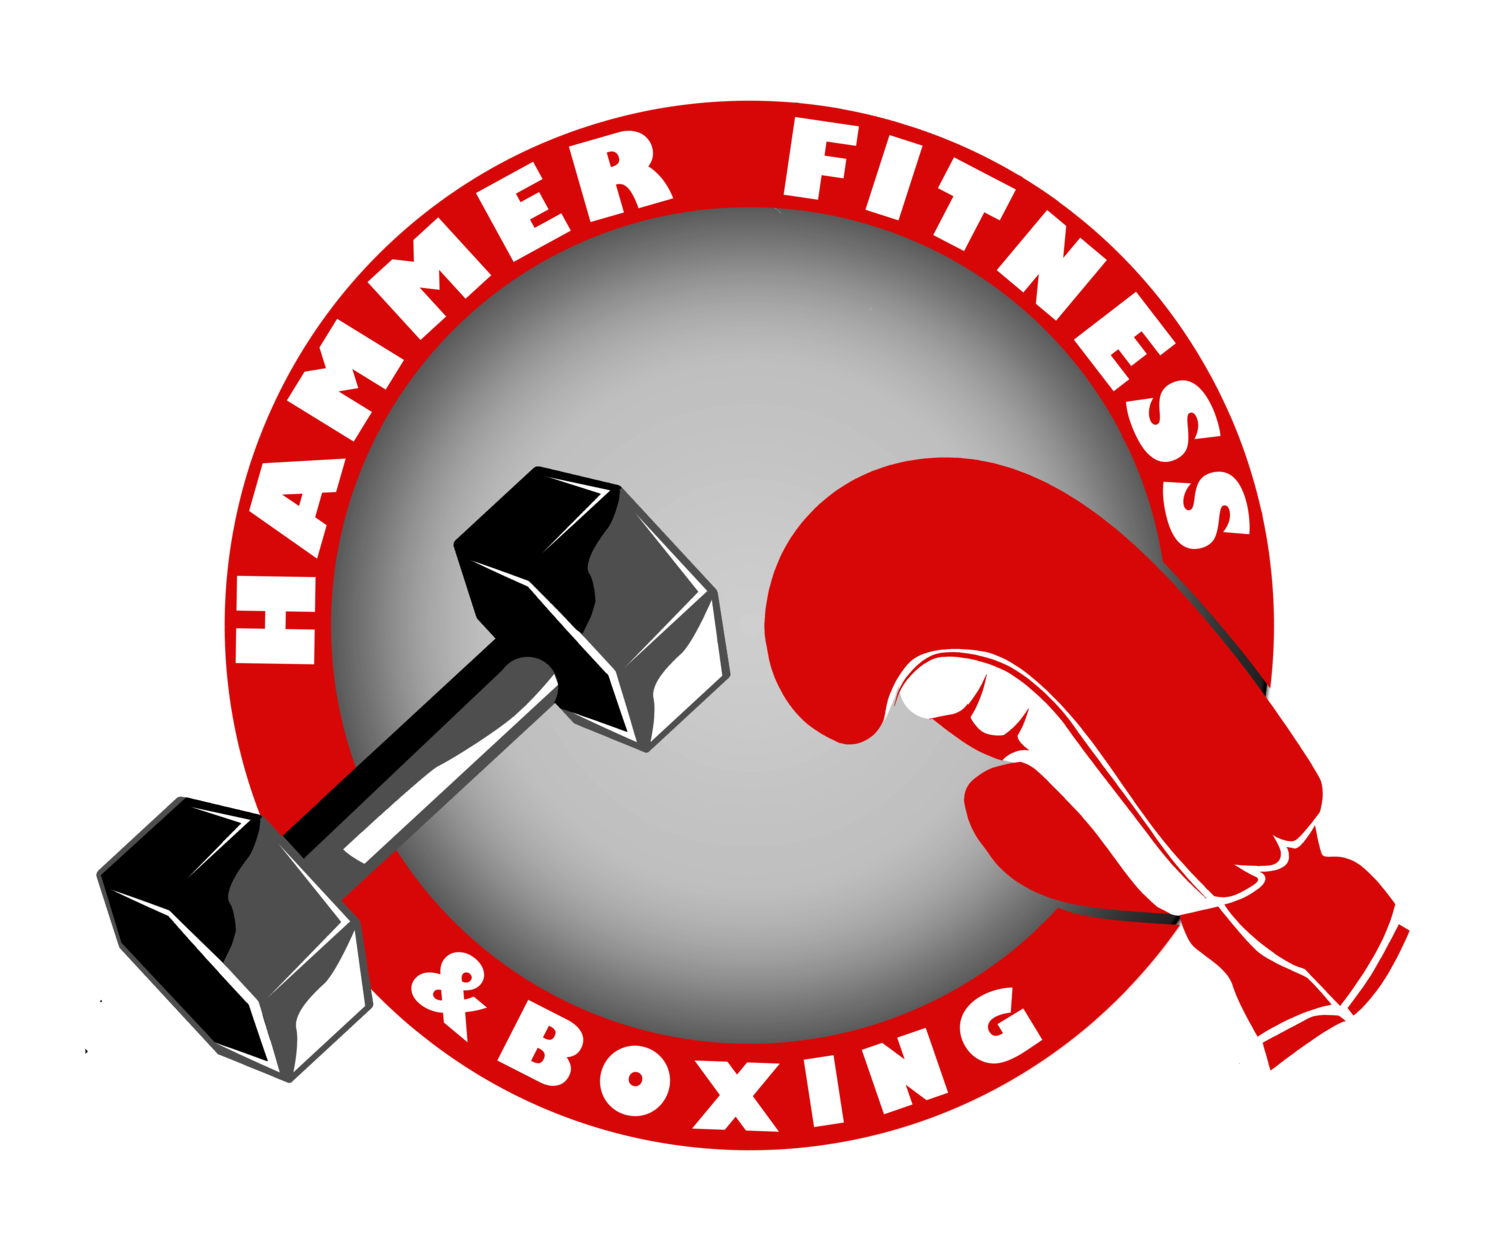 Hammer Fitness & Boxing